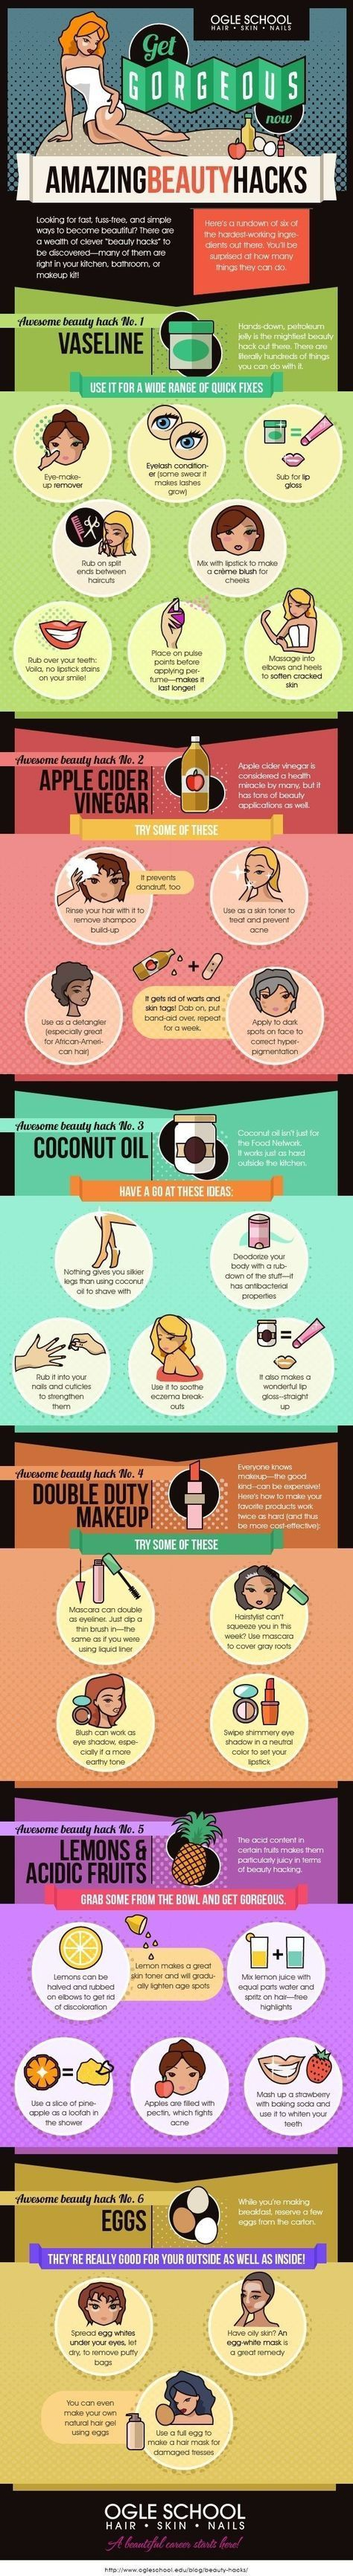 diy beauty hacks. DIY Tips, Tricks, And Beauty Hacks Every Girl Should Know.  For Teens with Acne, To Makeup For Natural Looks Or Shaving.  Stuff For Skincare, For Hair, For Overnight Treatment, For Eyelashes, Nails, Eyebrows, Teeth, Blackheads, For Skin, and For Lazy Ladies Looking For Amazing and Cheap, Step By Step Looks.